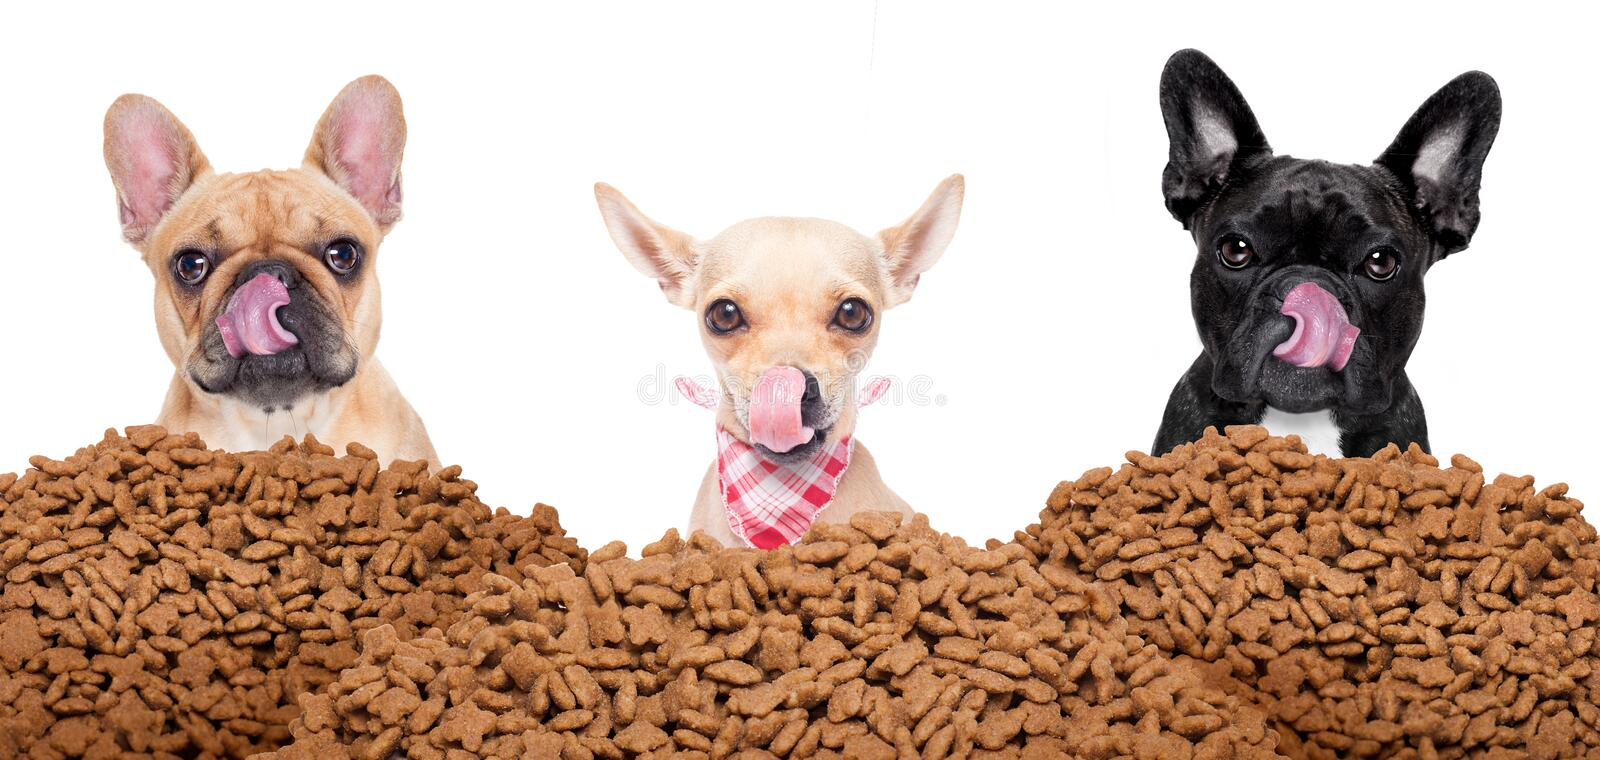 Group of dogs behind mound food royalty free stock images